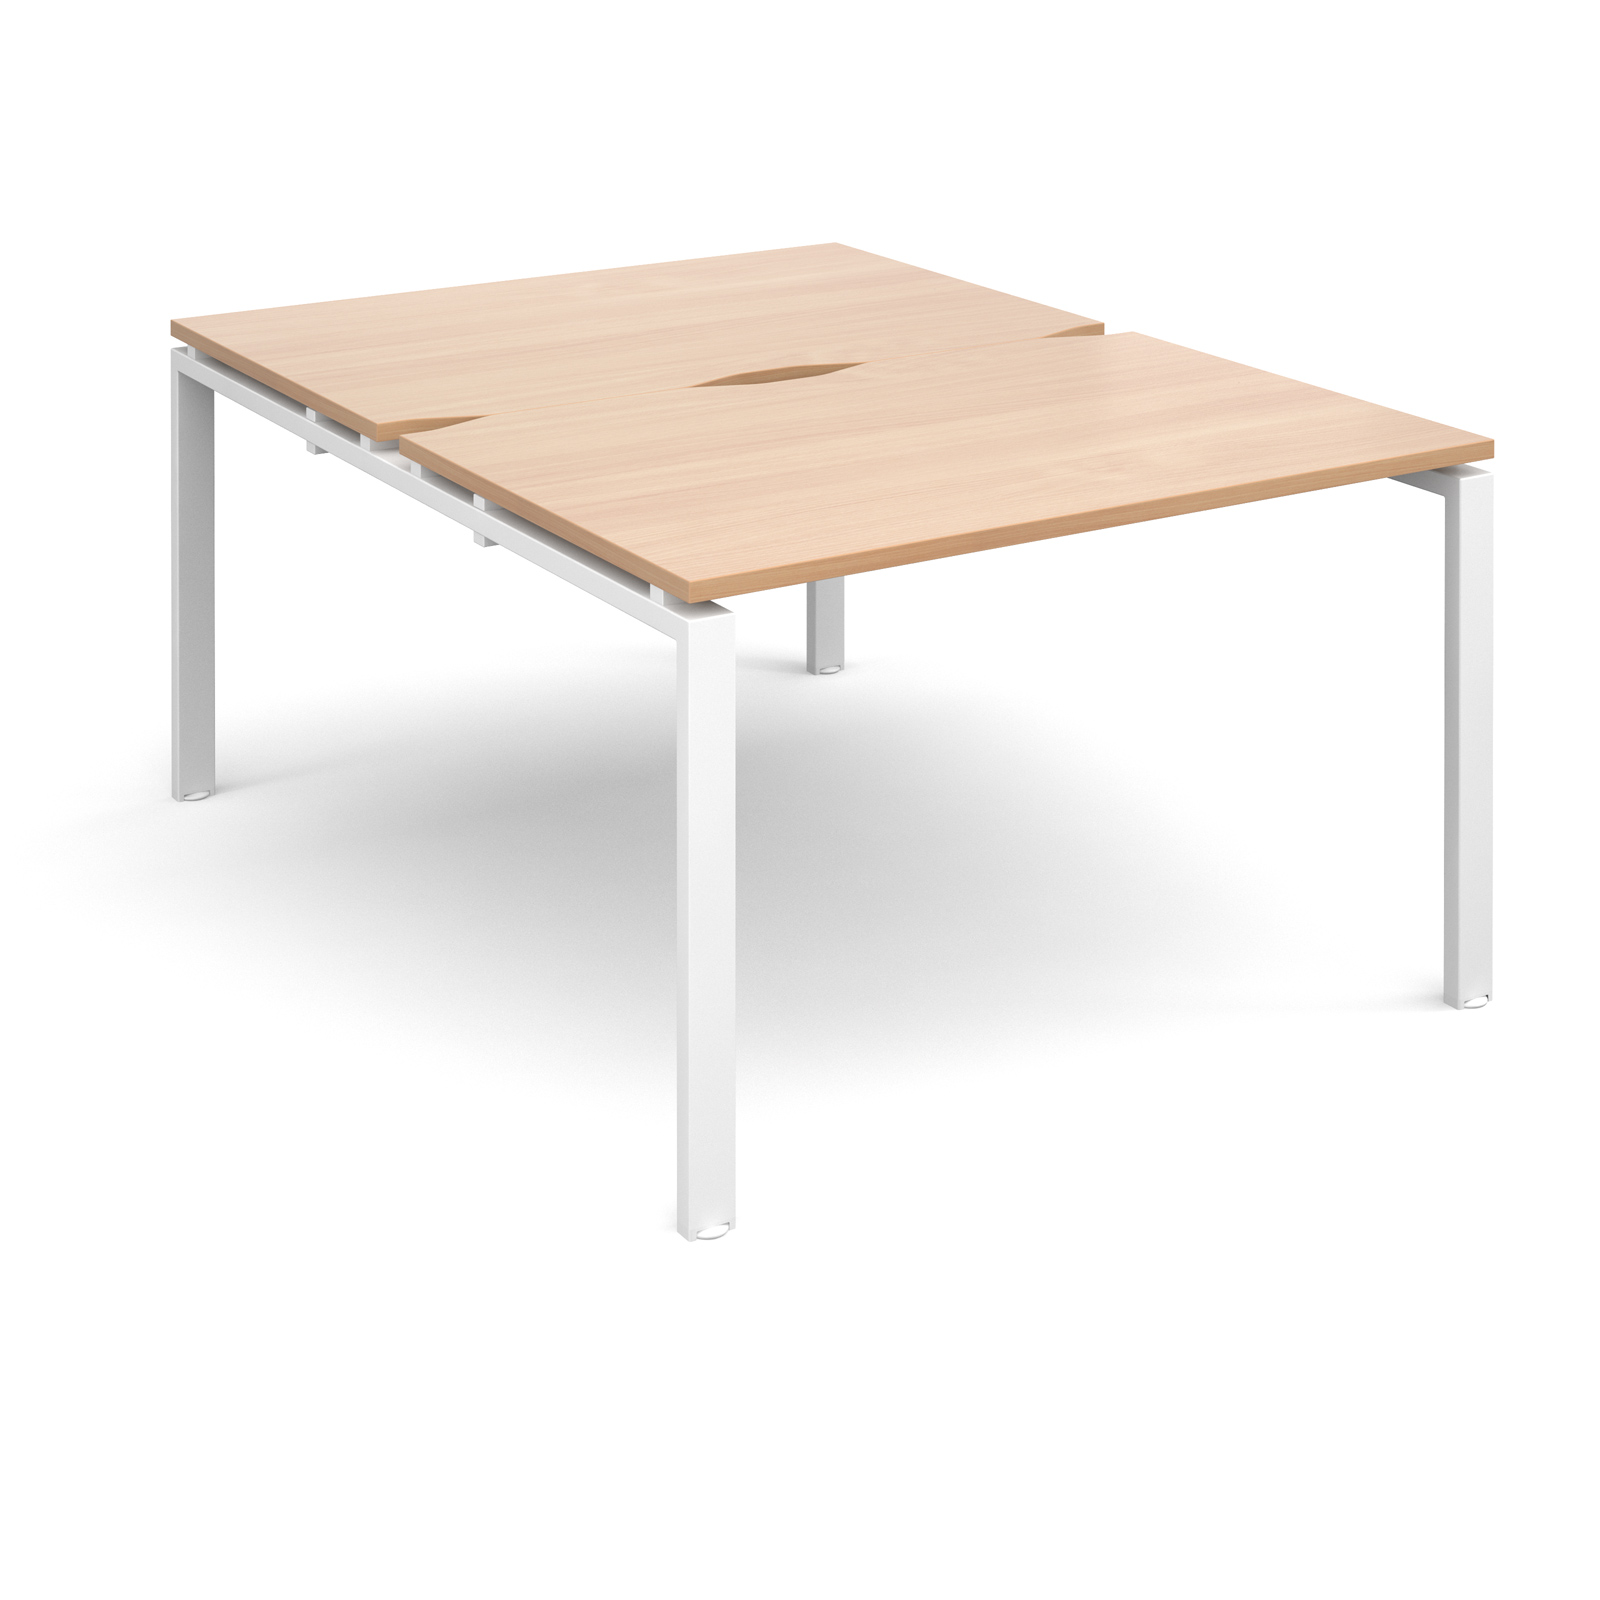 Adapt II 1200 x 1600 x 725mm Back to Back Desk - Beech / White Leg